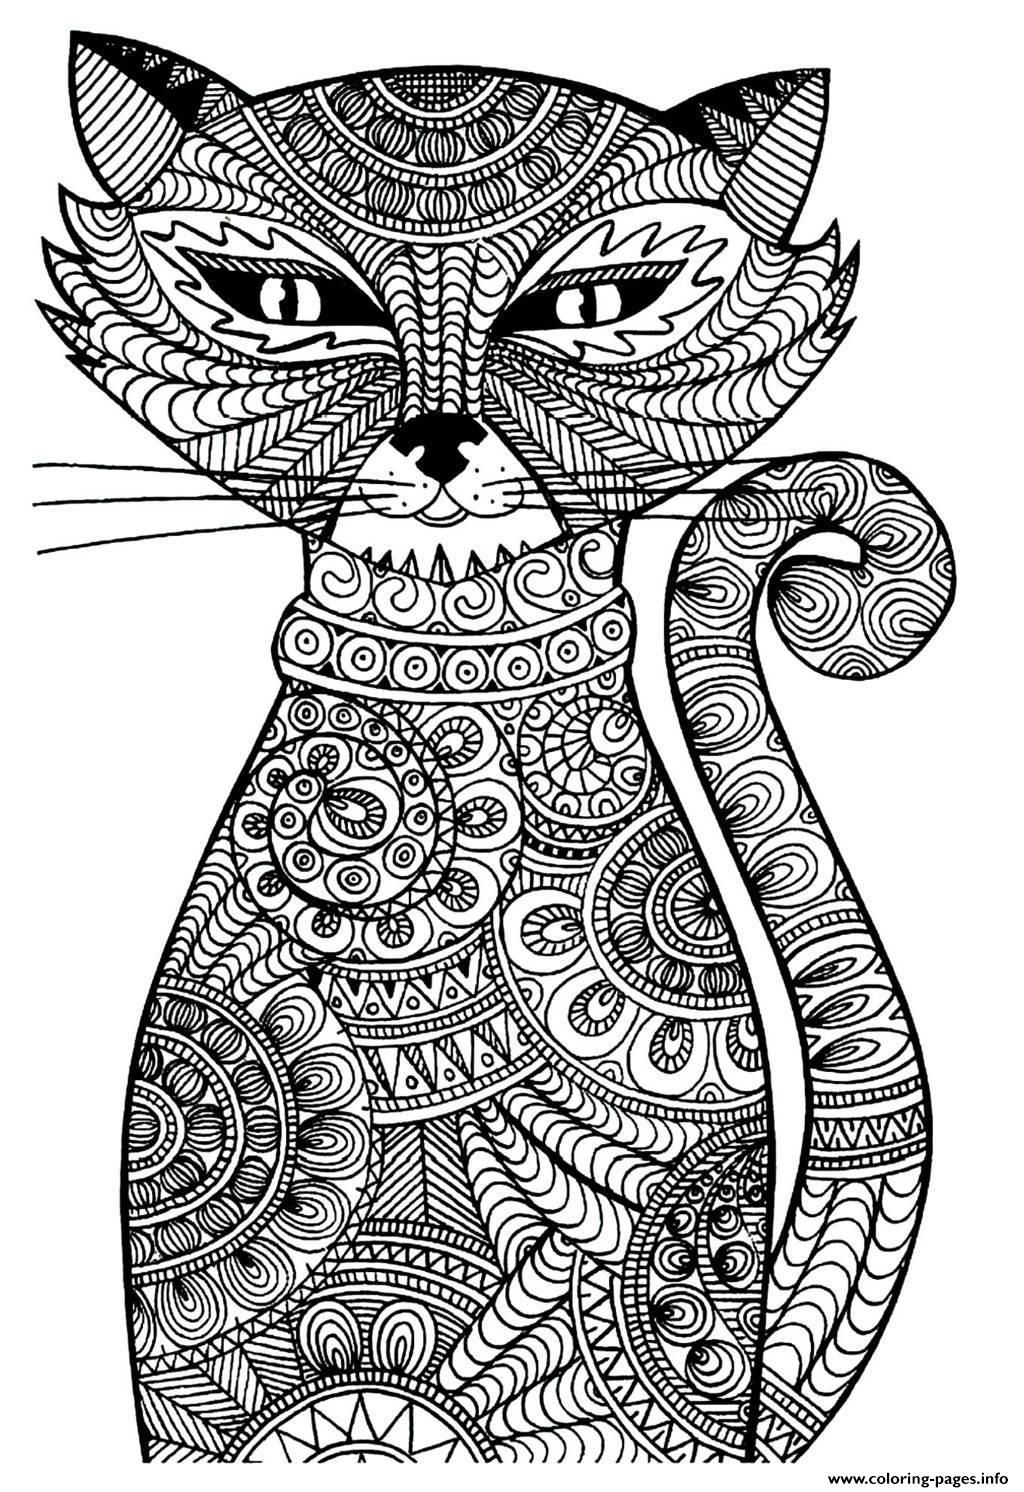 Print adult cat coloring pages awesomeness Pinterest Cat